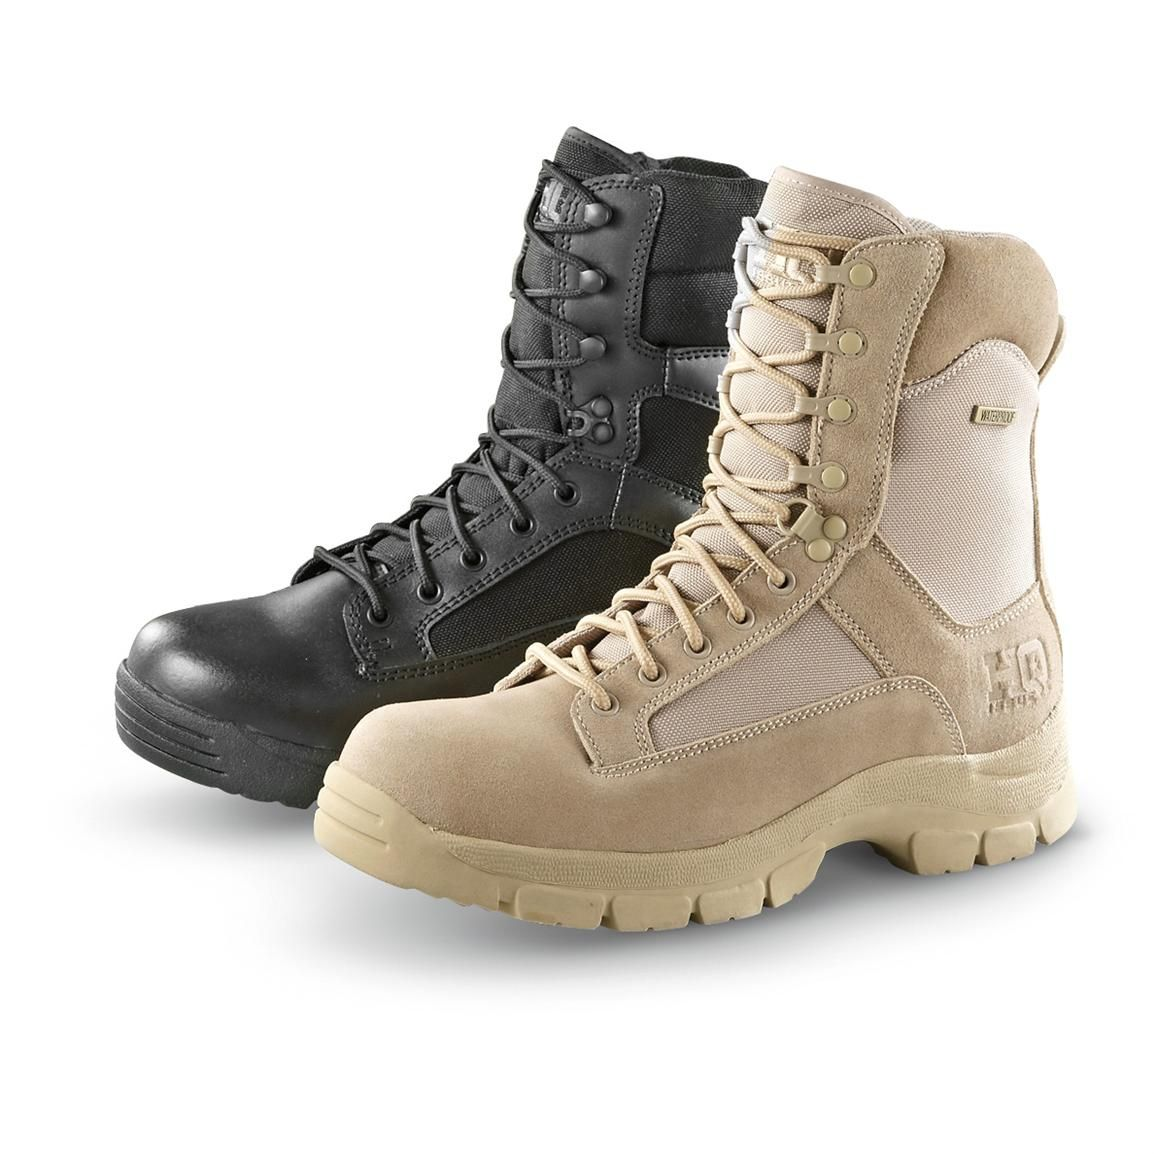 53c58e673bef HQ ISSUE Men s Waterproof Side Zip Tactical Boots in 2019